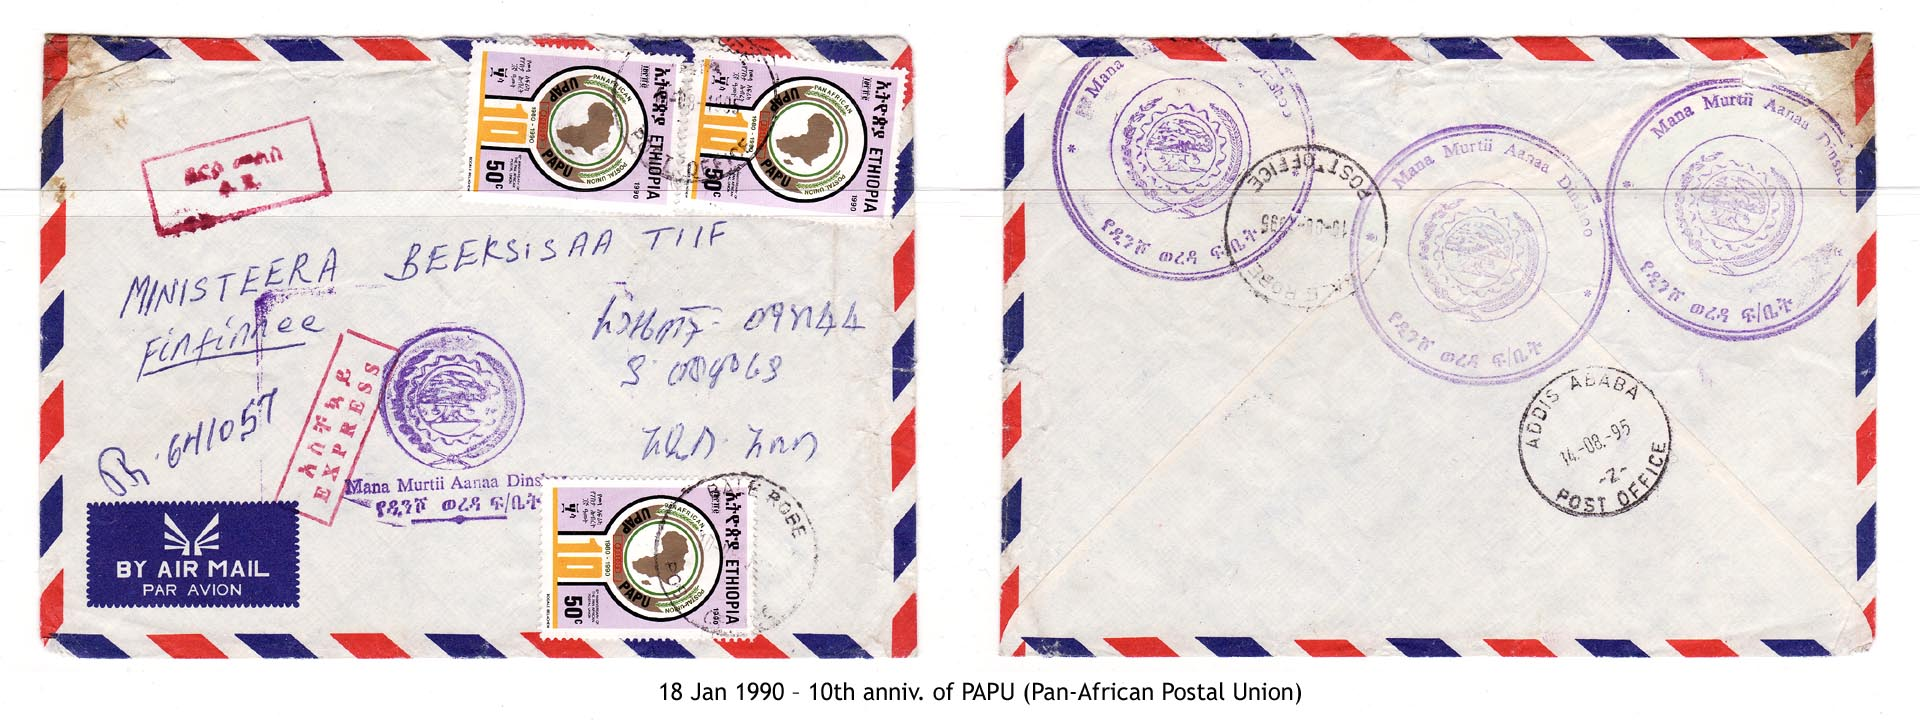 19900118 – 10th anniv. of PAPU (Pan-African Postal Union)